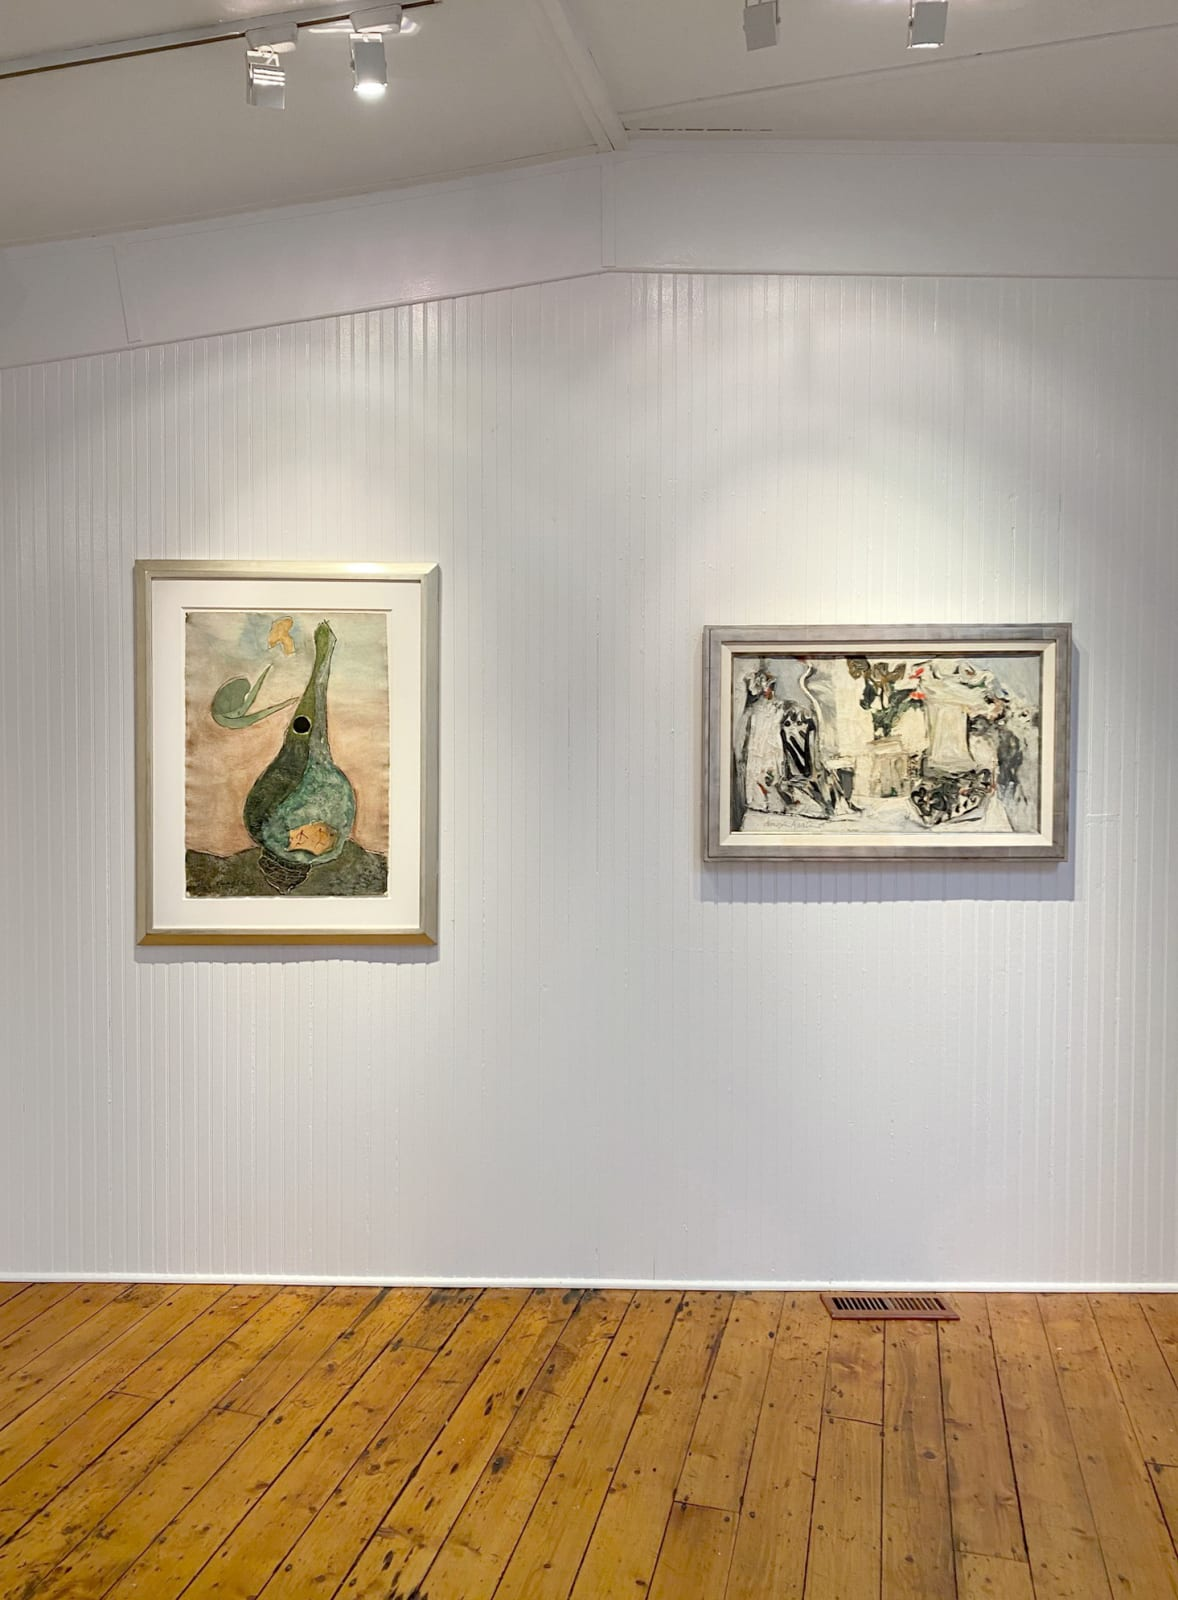 Installation view: The Art of the Discovery: Post-War Selections